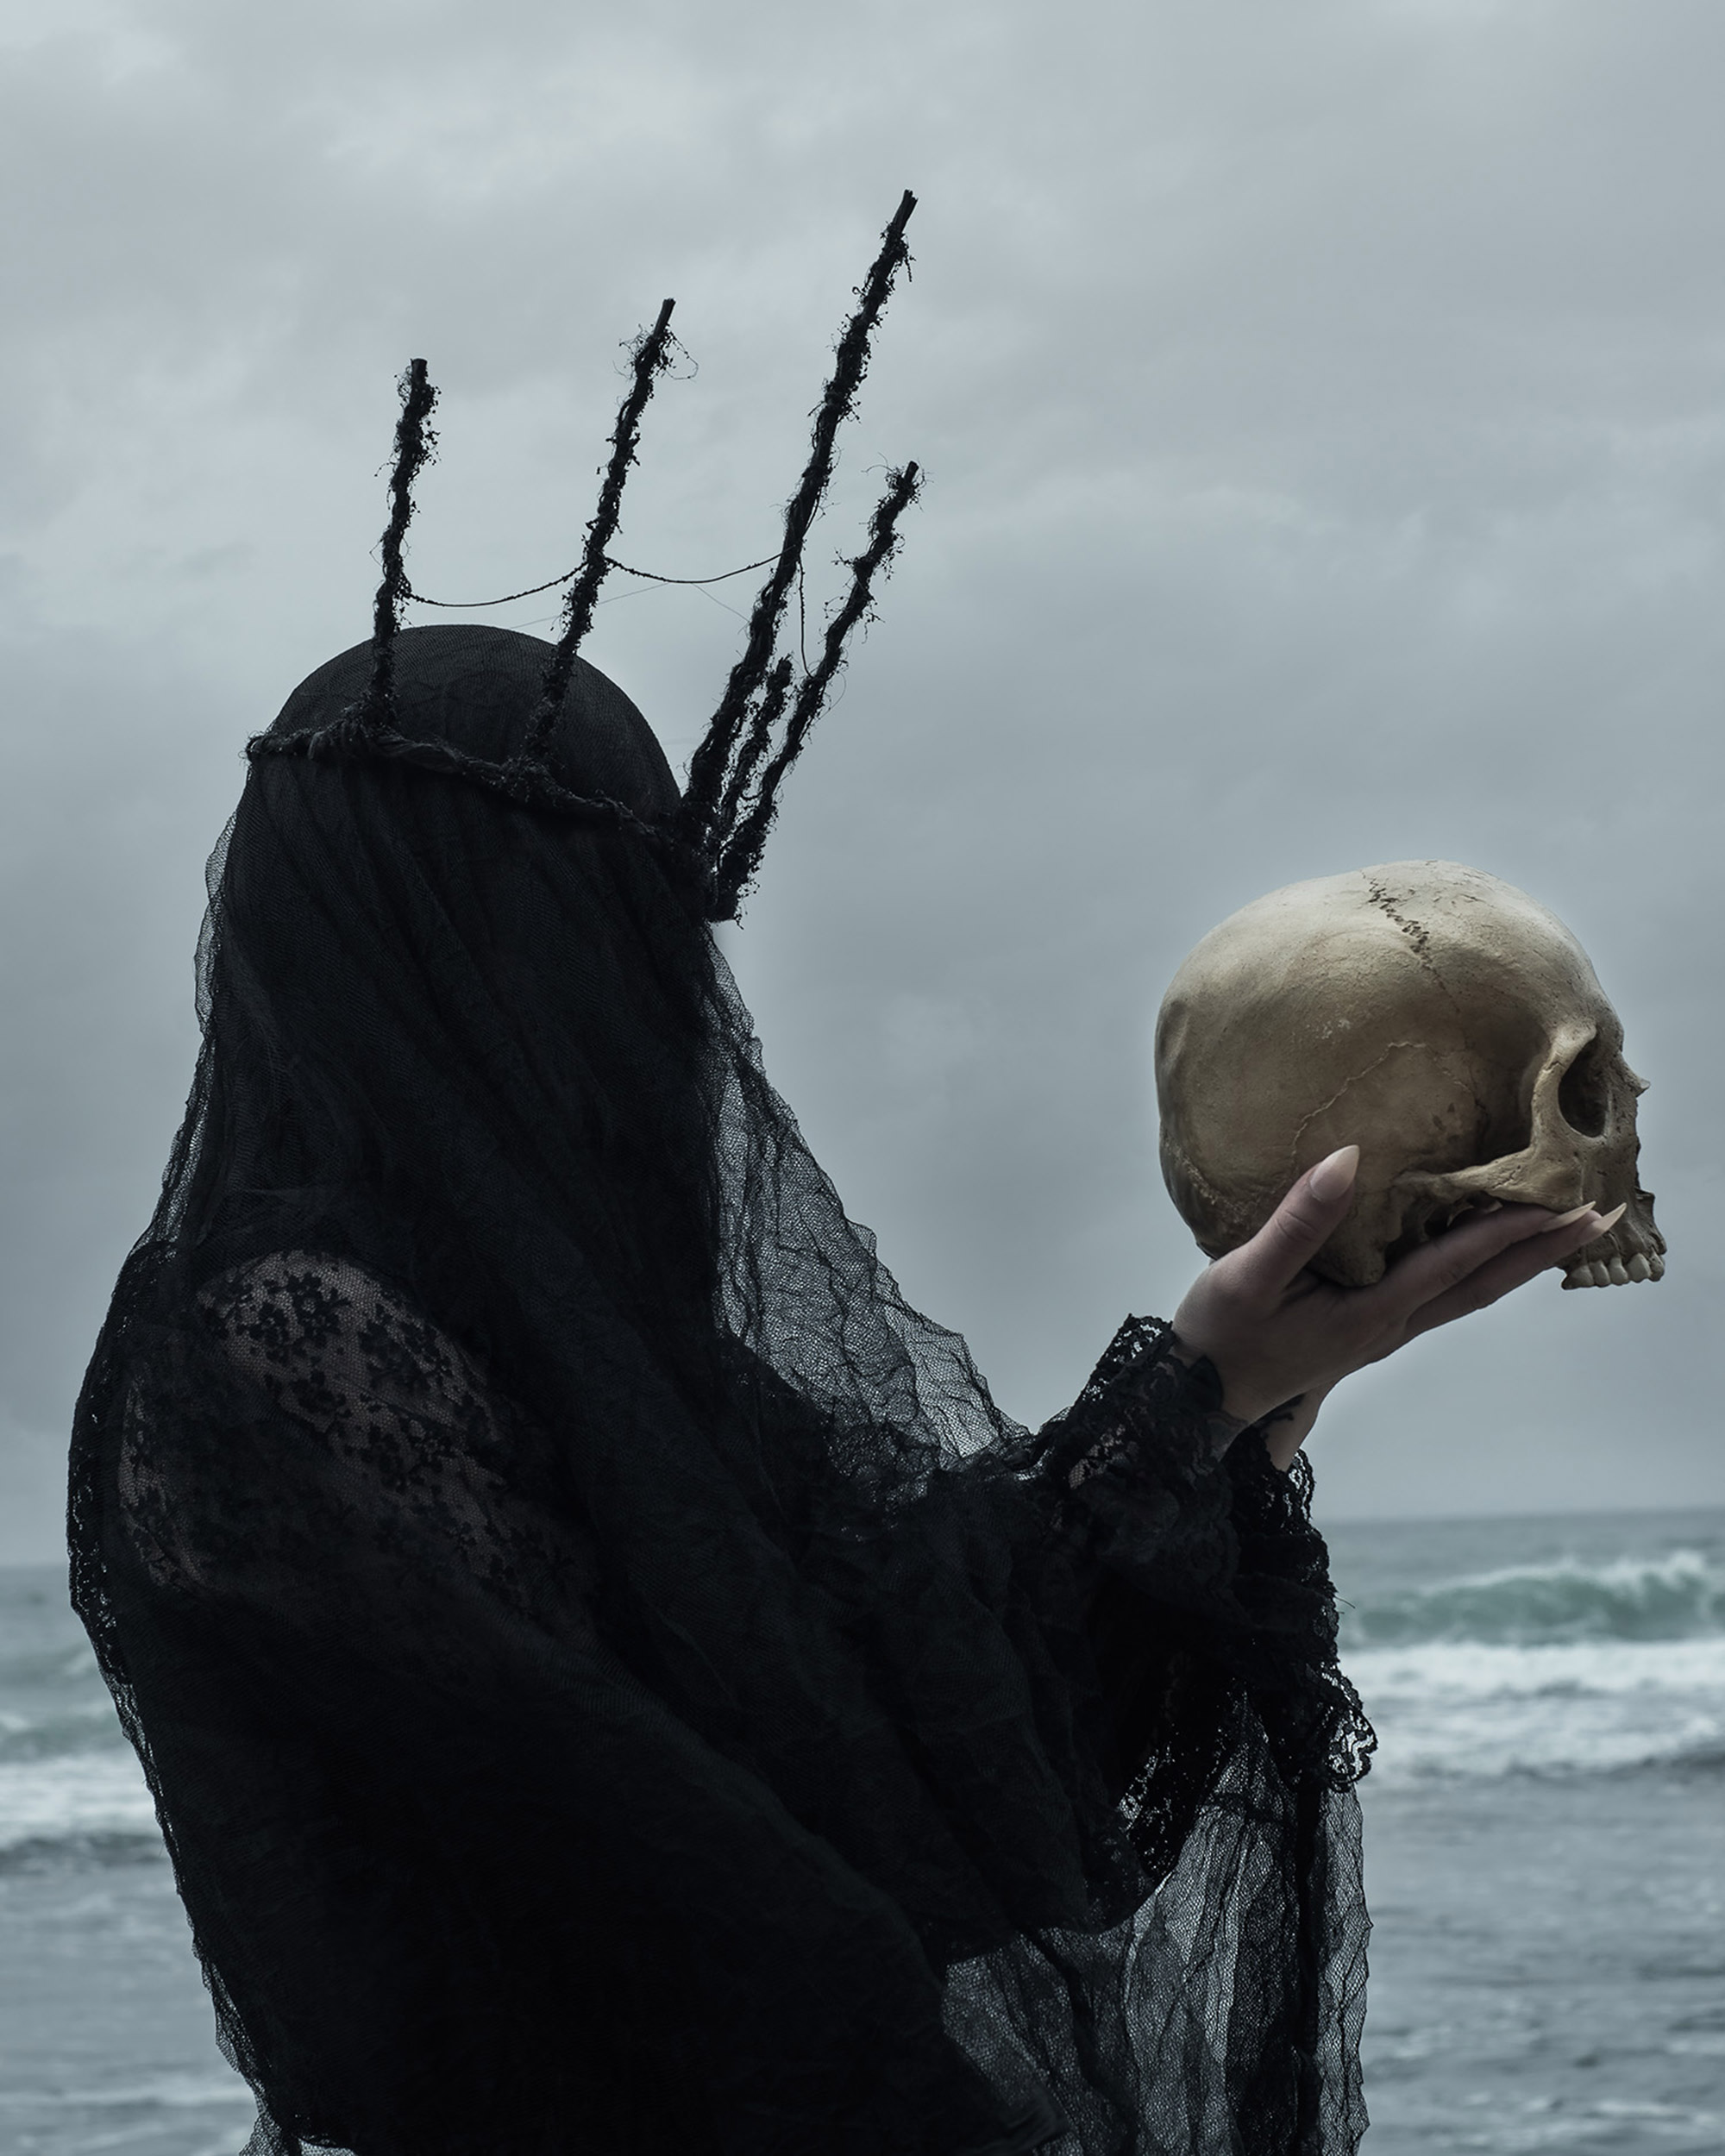 American Ghoul, Siren, dark figure holding skull on shoreline